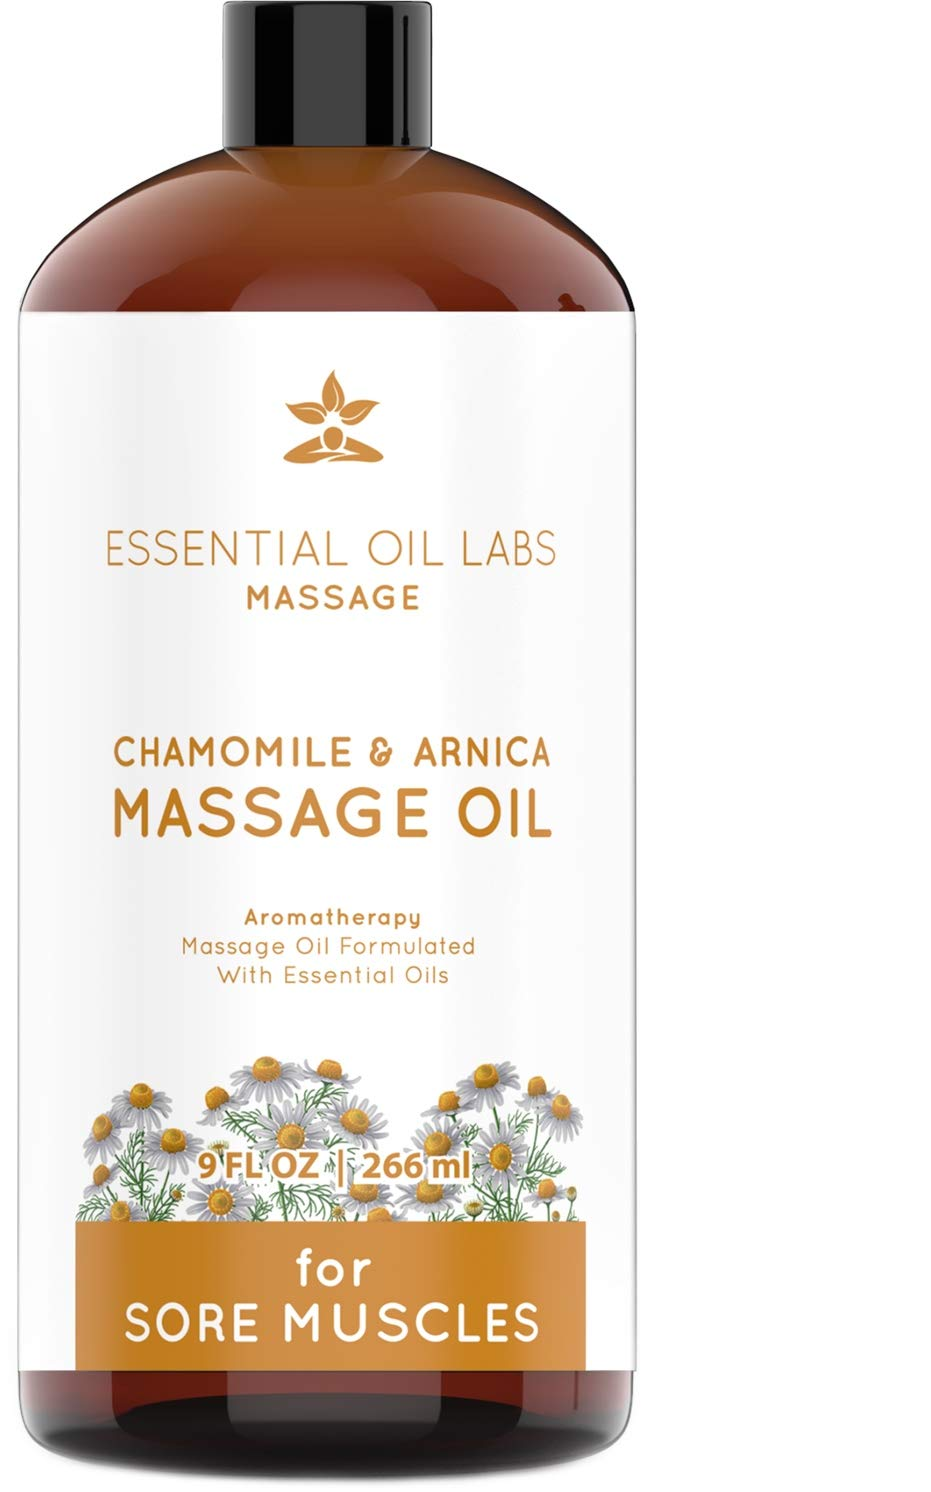 Chamomile + Arnica Massage Oil - Excellent for Sore Muscles